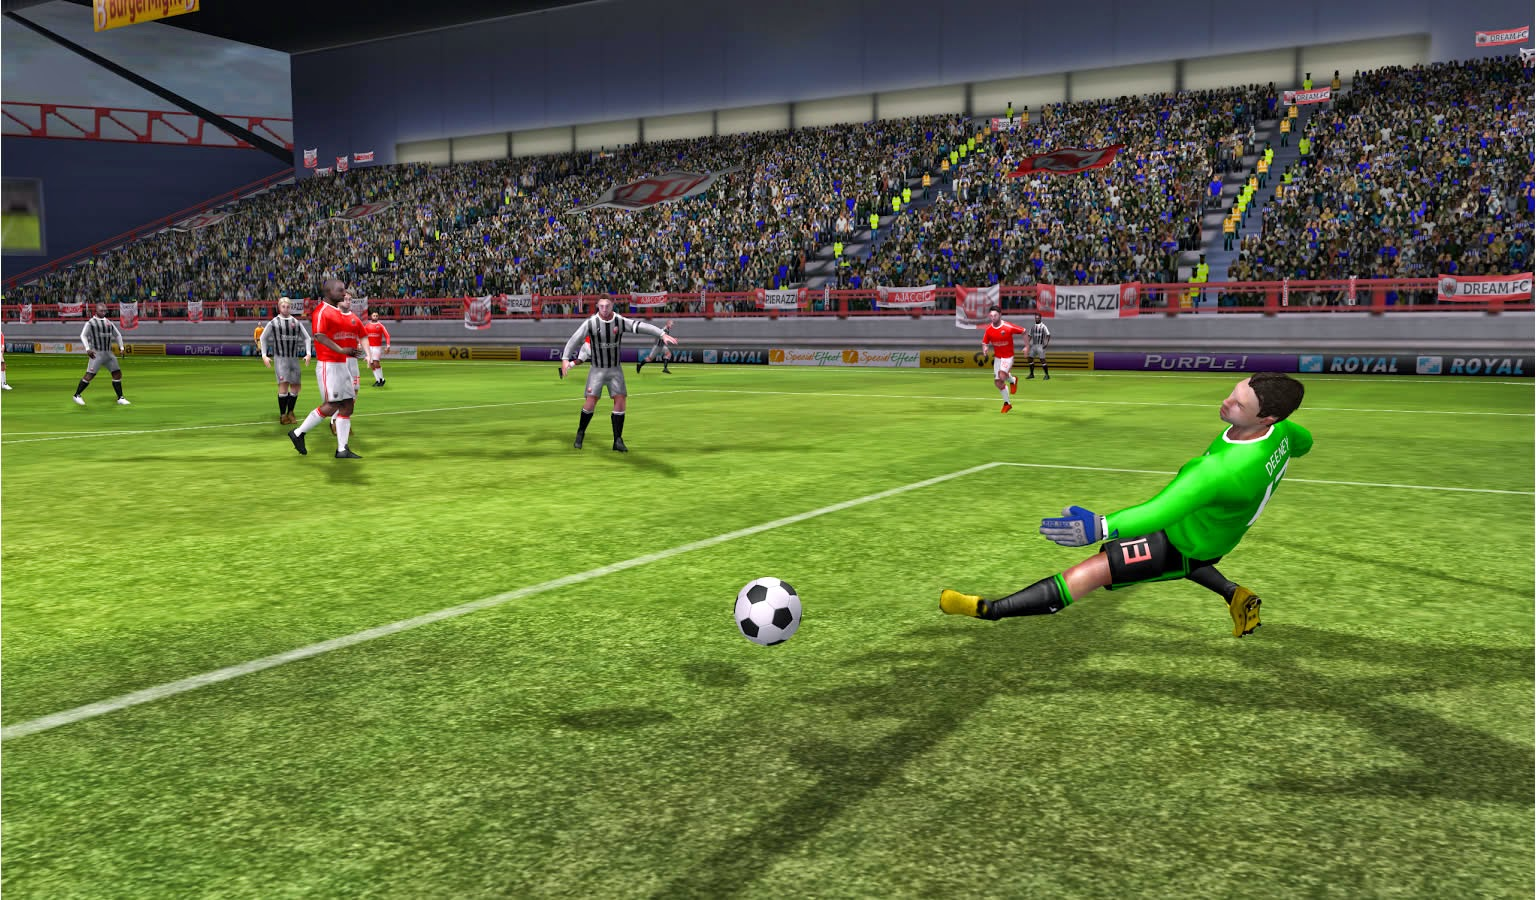 Dream-League-Soccer-apk-indir3.jpg